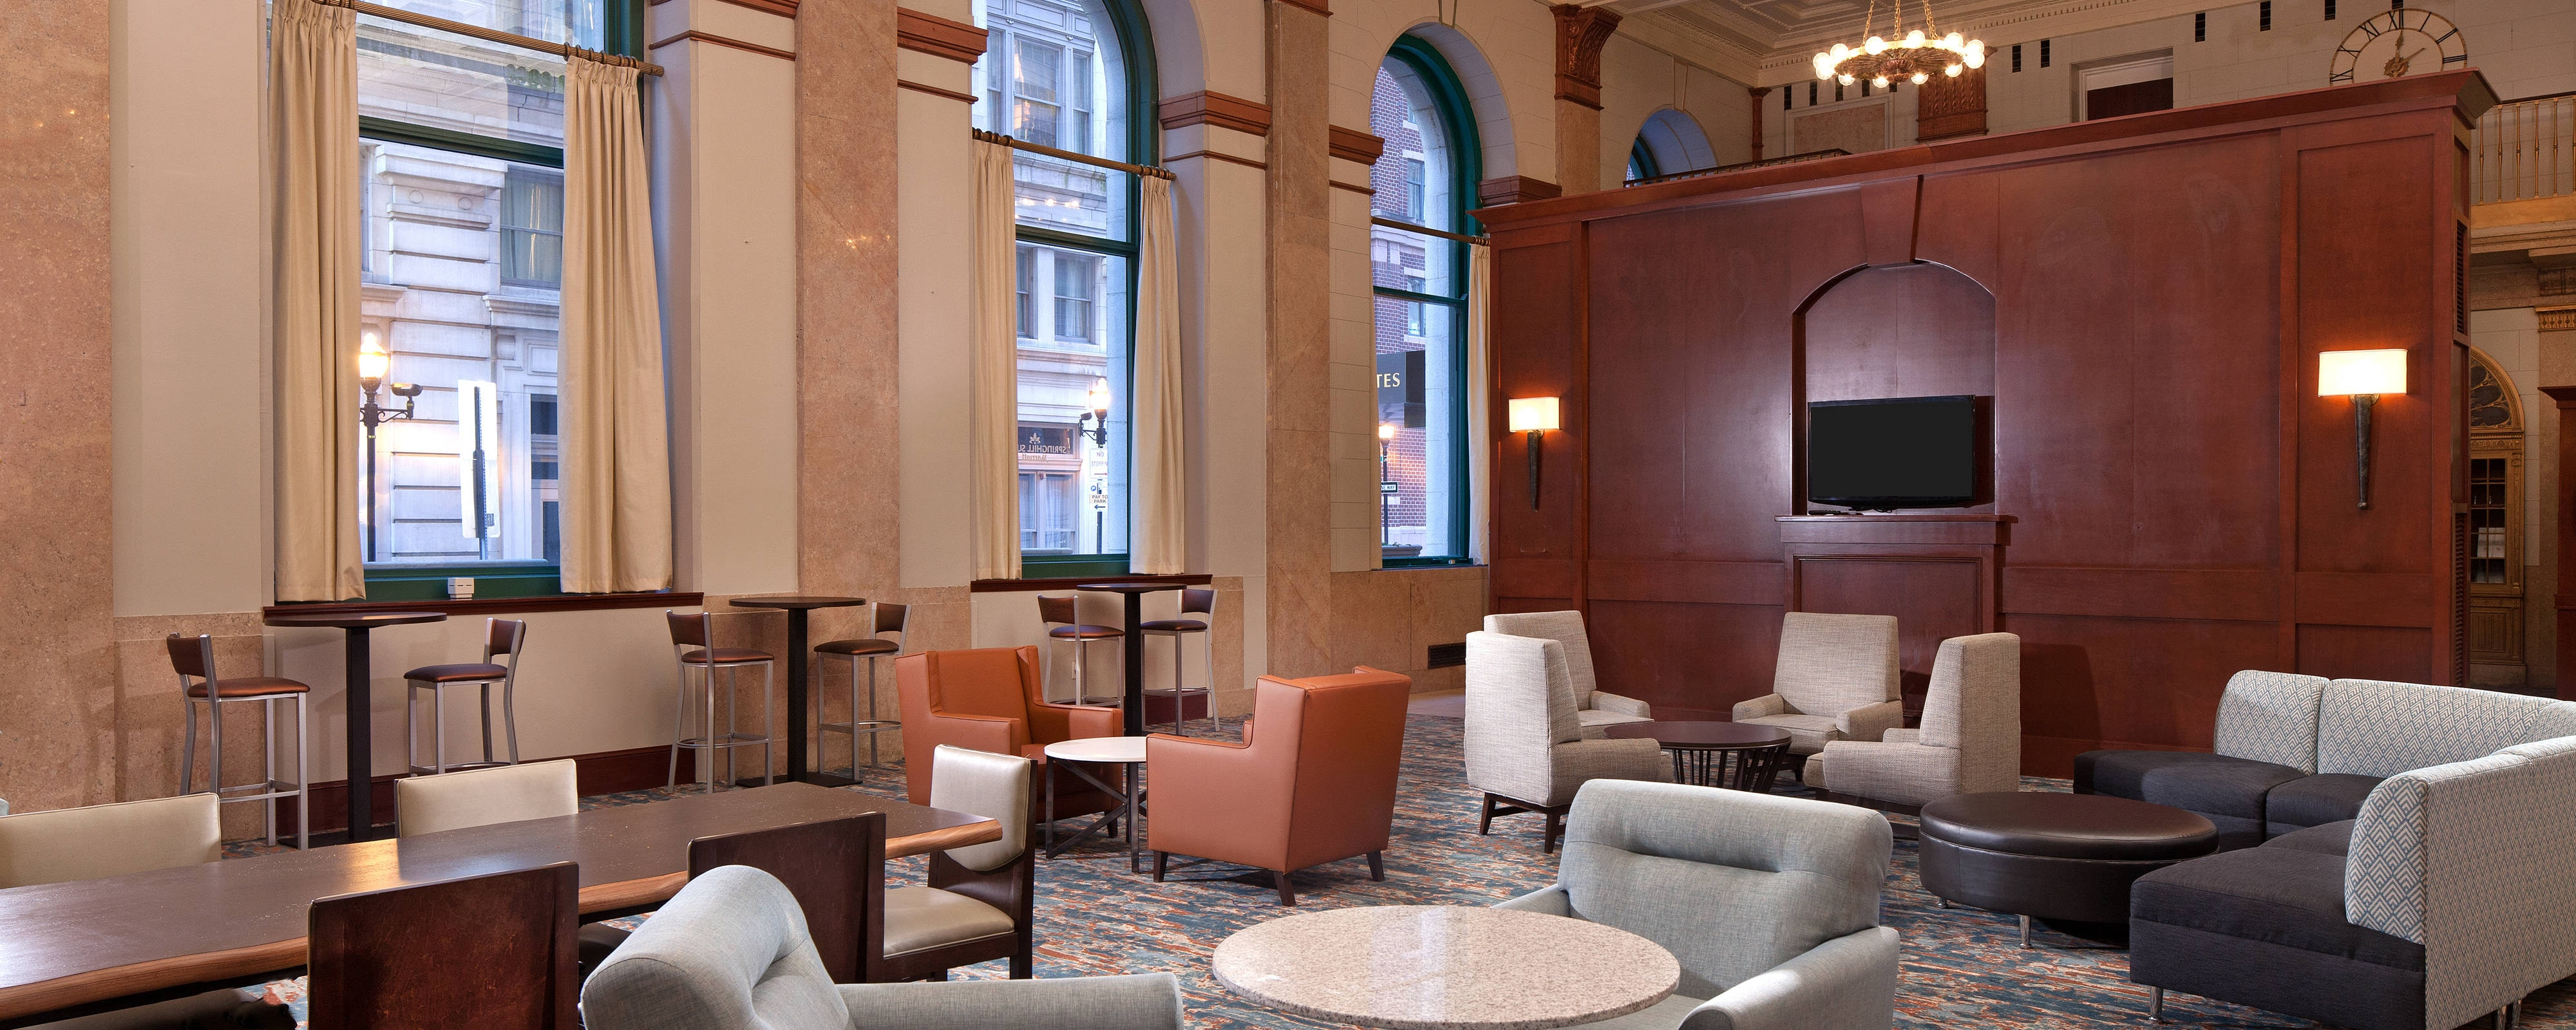 Hotels Downtown Baltimore - SpringHill Suites - Marriott